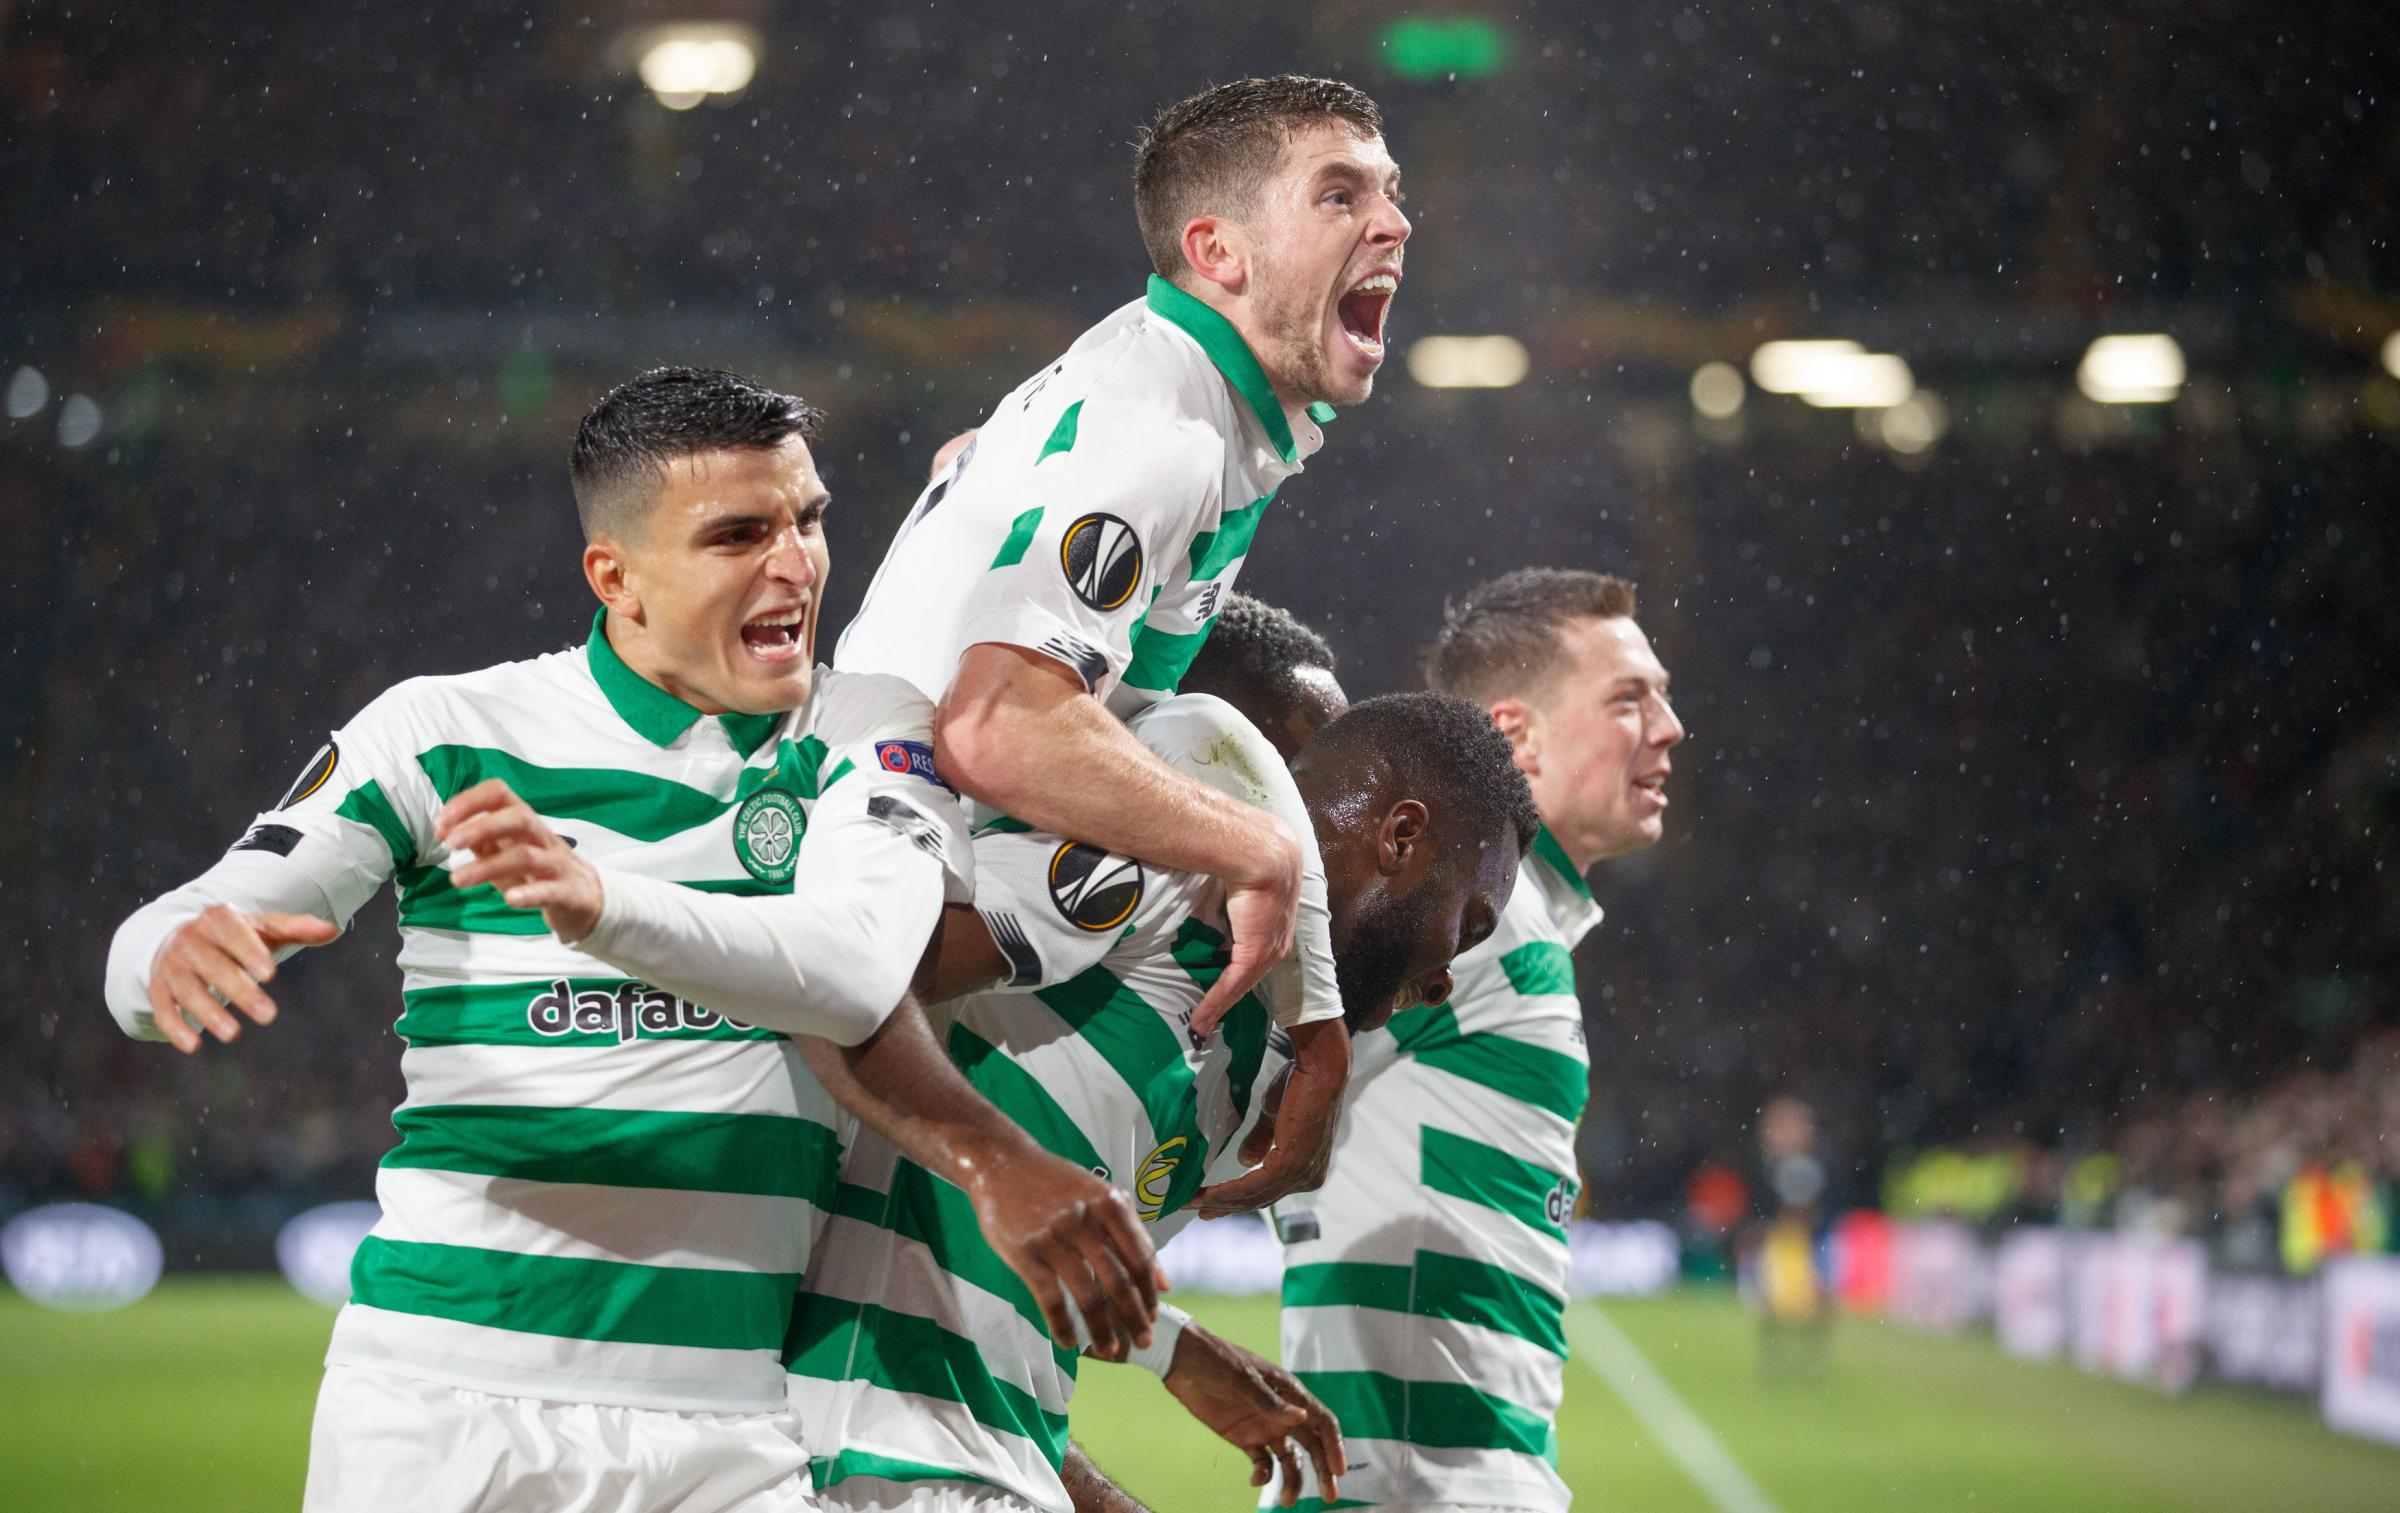 Celtic 2-0 Cluj: Europa League vengeance sweet for Hoops as Edouard and Elyounoussi settle score